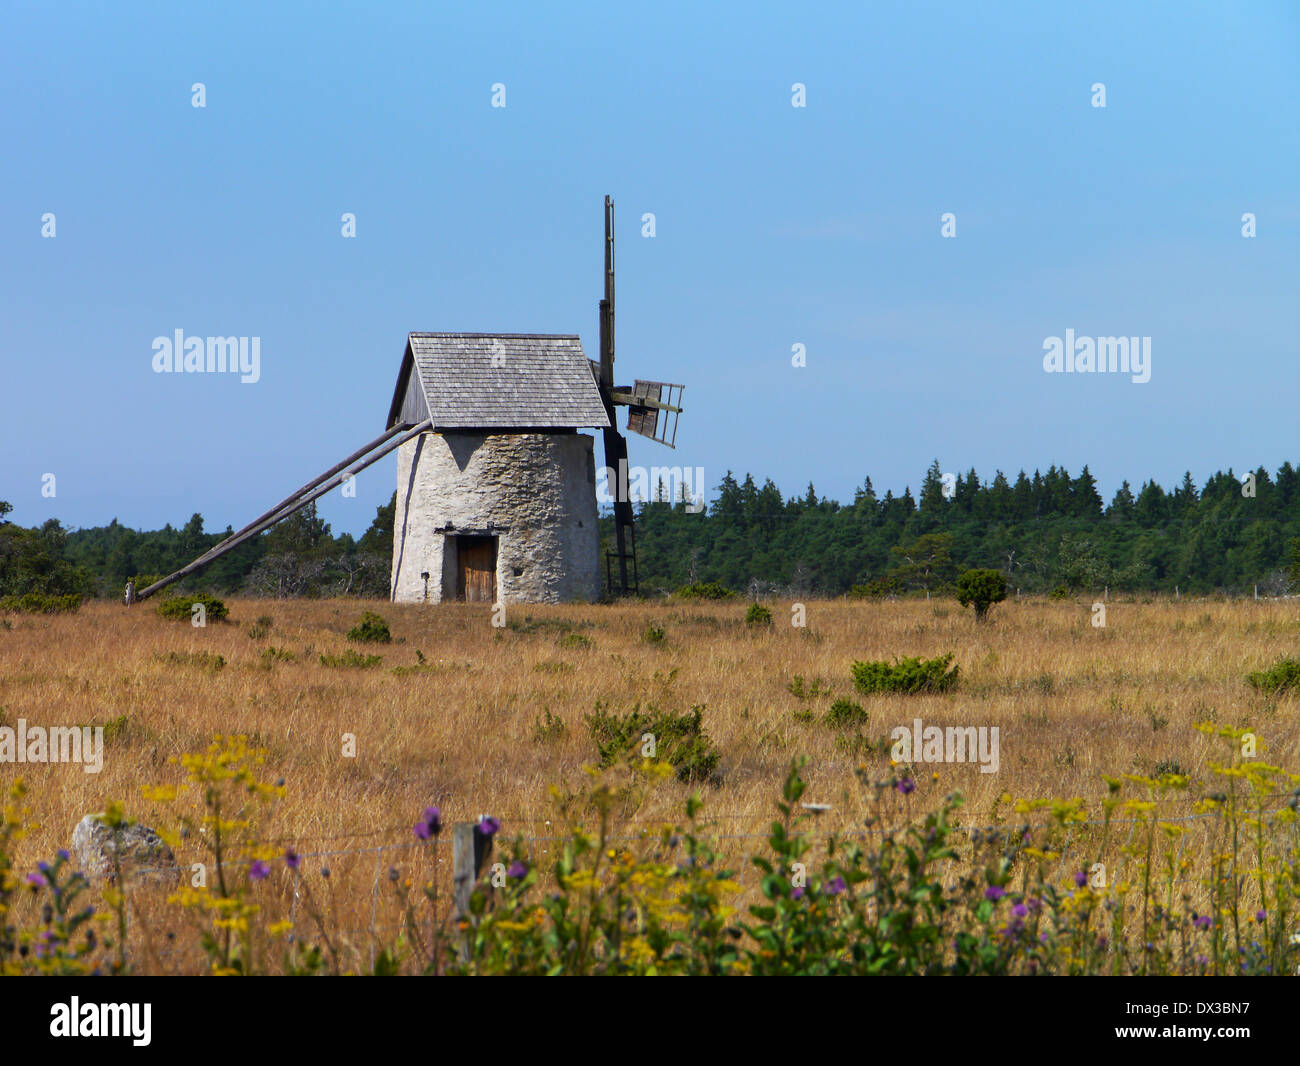 old windmill on gotland, gotlands län, sweden - Stock Image